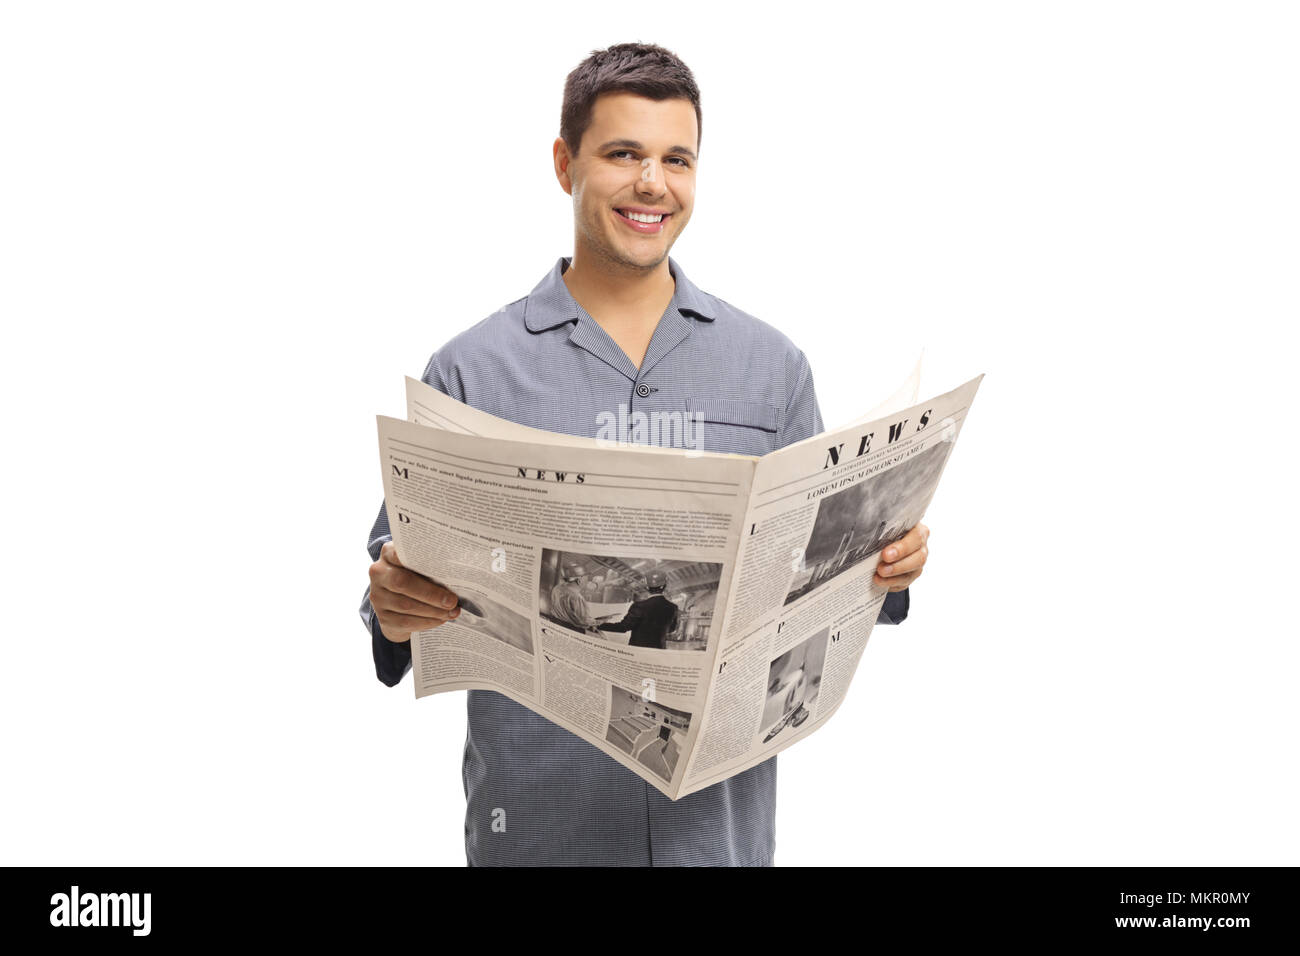 Young man in pajamas holding a newspaper isolated on white background - Stock Image